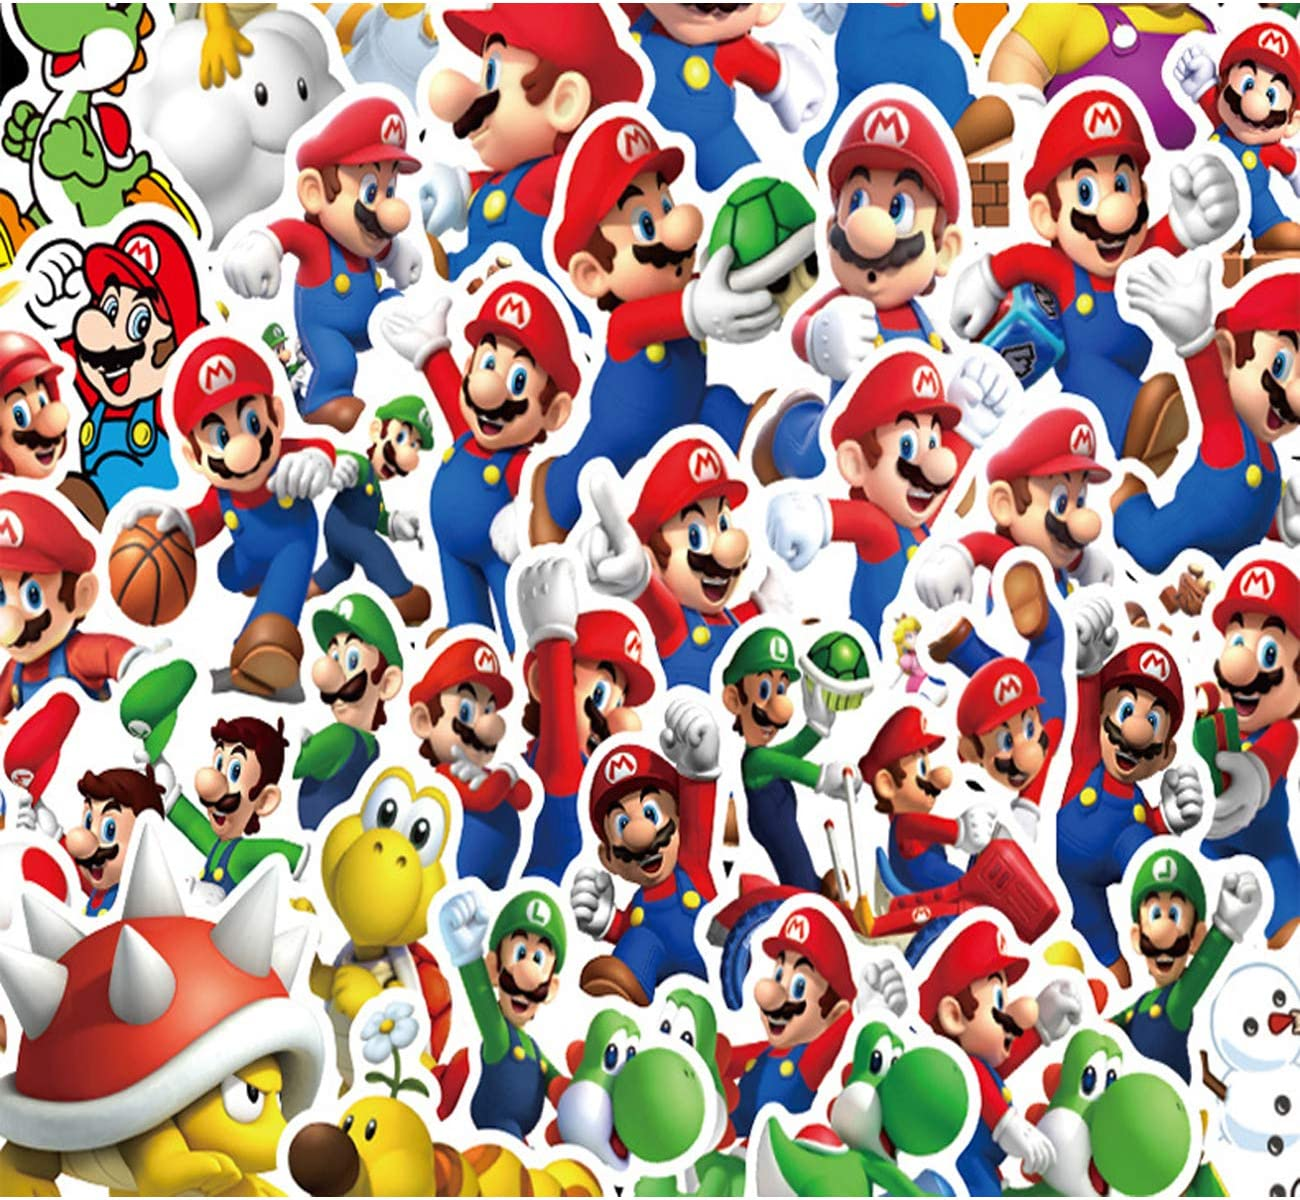 Super Mario Stickers 100pcs Video Game Cartoon Stickers Water Bottle Stickers for Teens Adults Laptop Skateboard Guitar Luggage Vinyl Decal Stickers